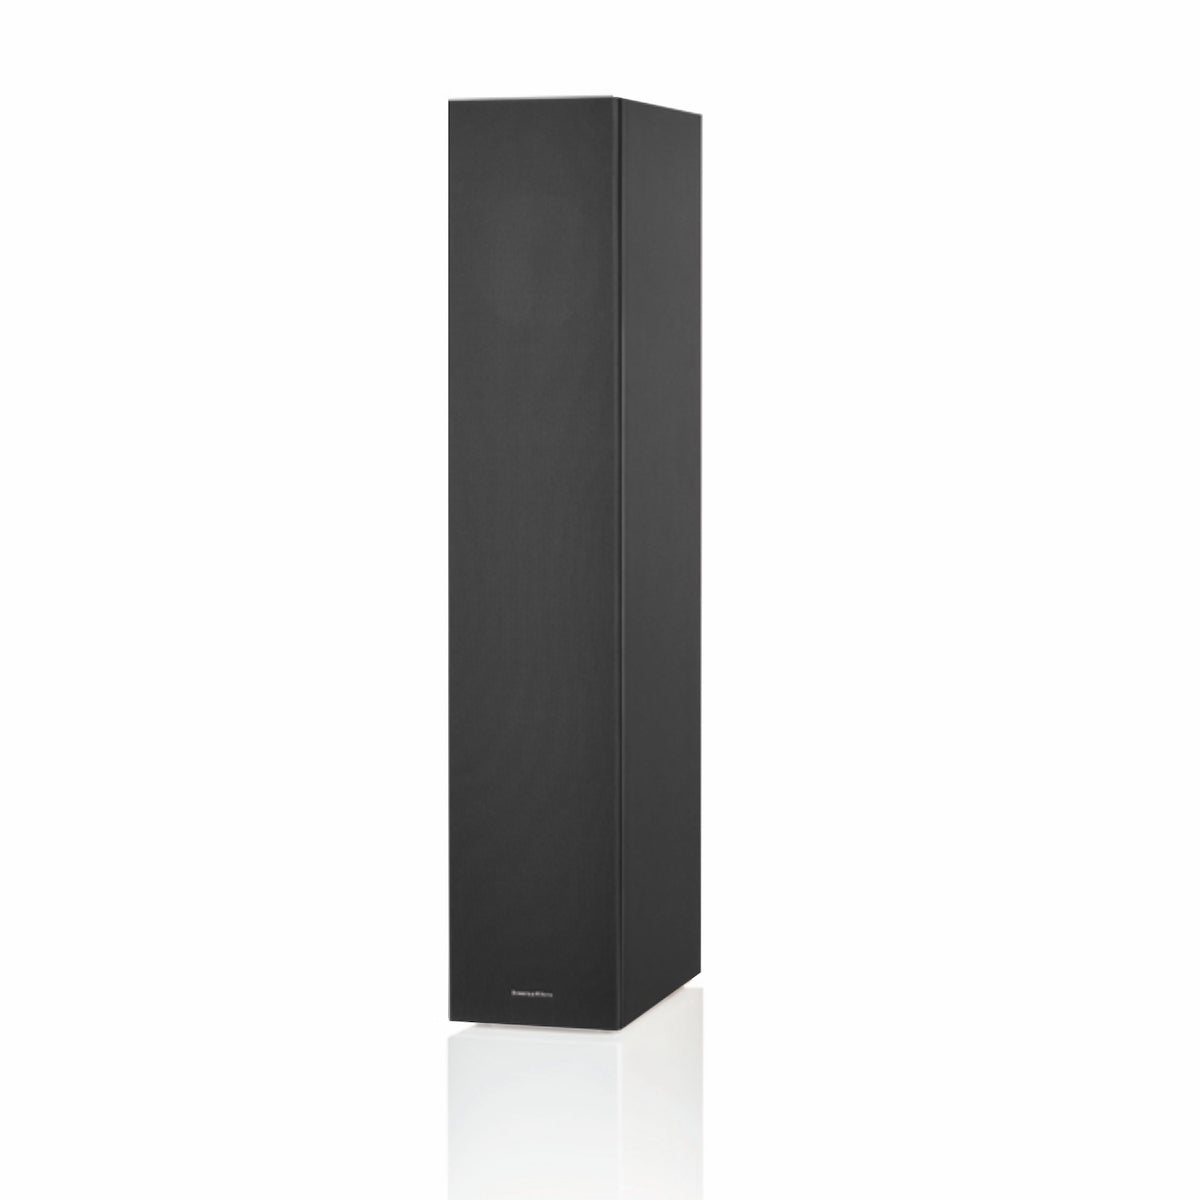 Bowers & Wilkins 603 S2 - Floor Standing Speaker (Pair)